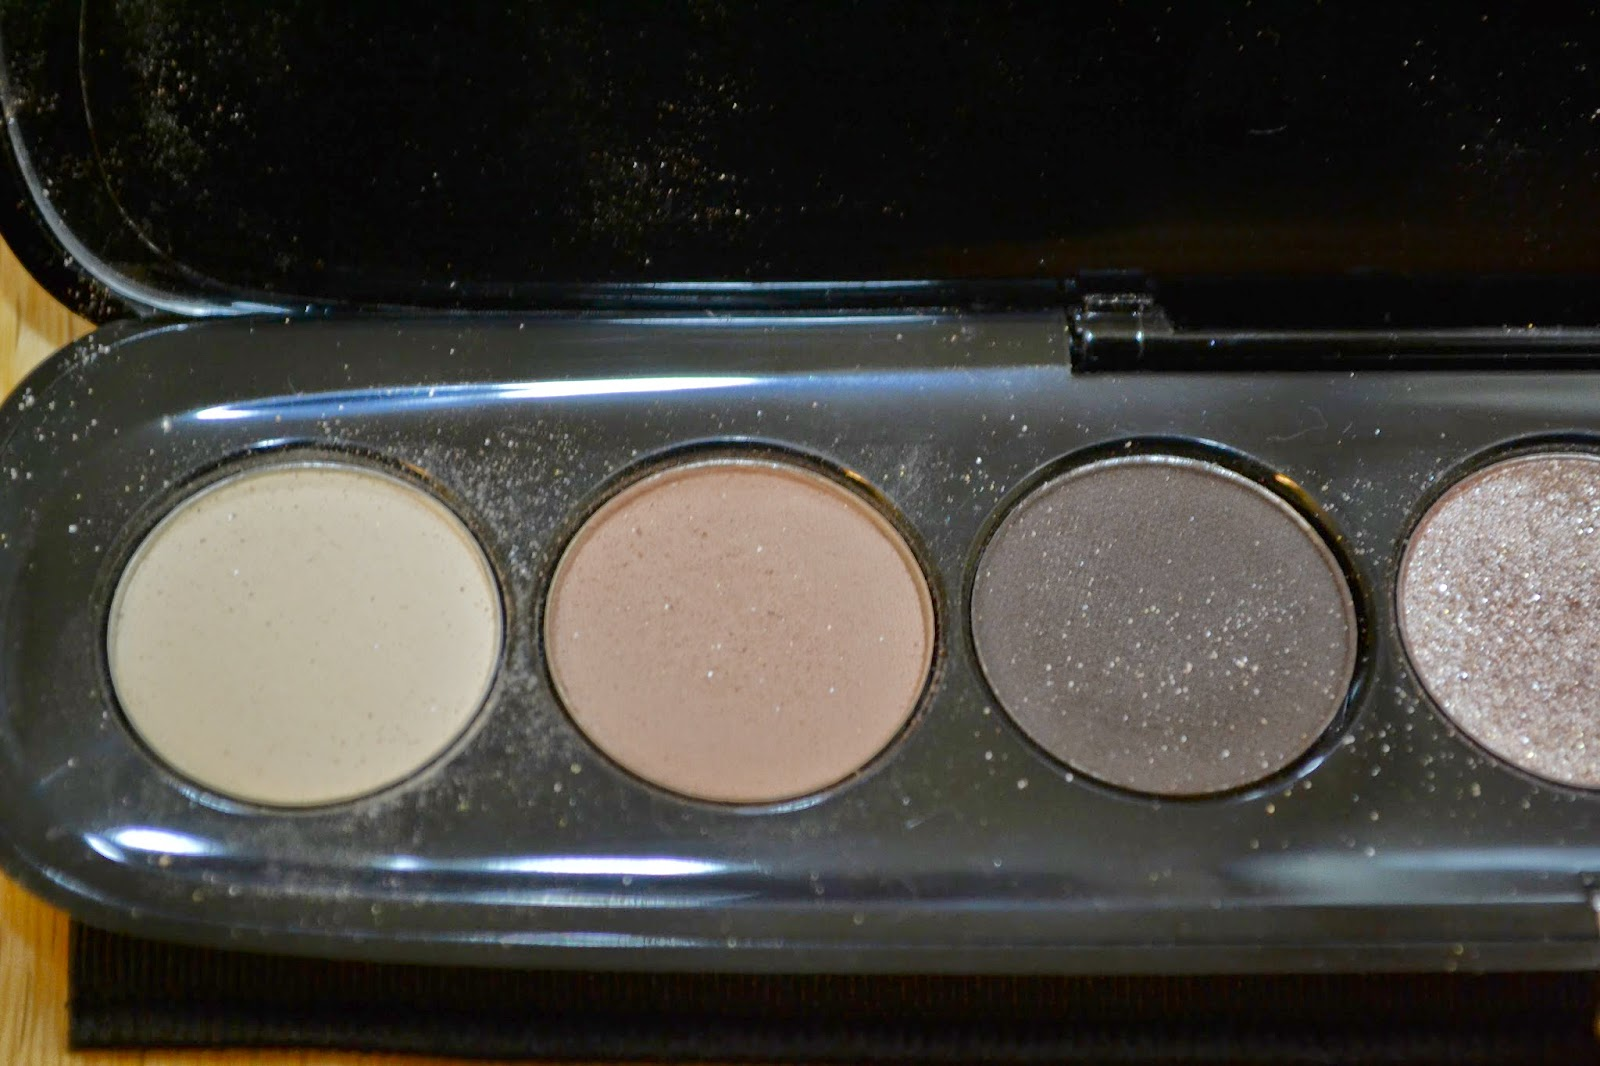 Marc Jacobs' The Lolita Palette